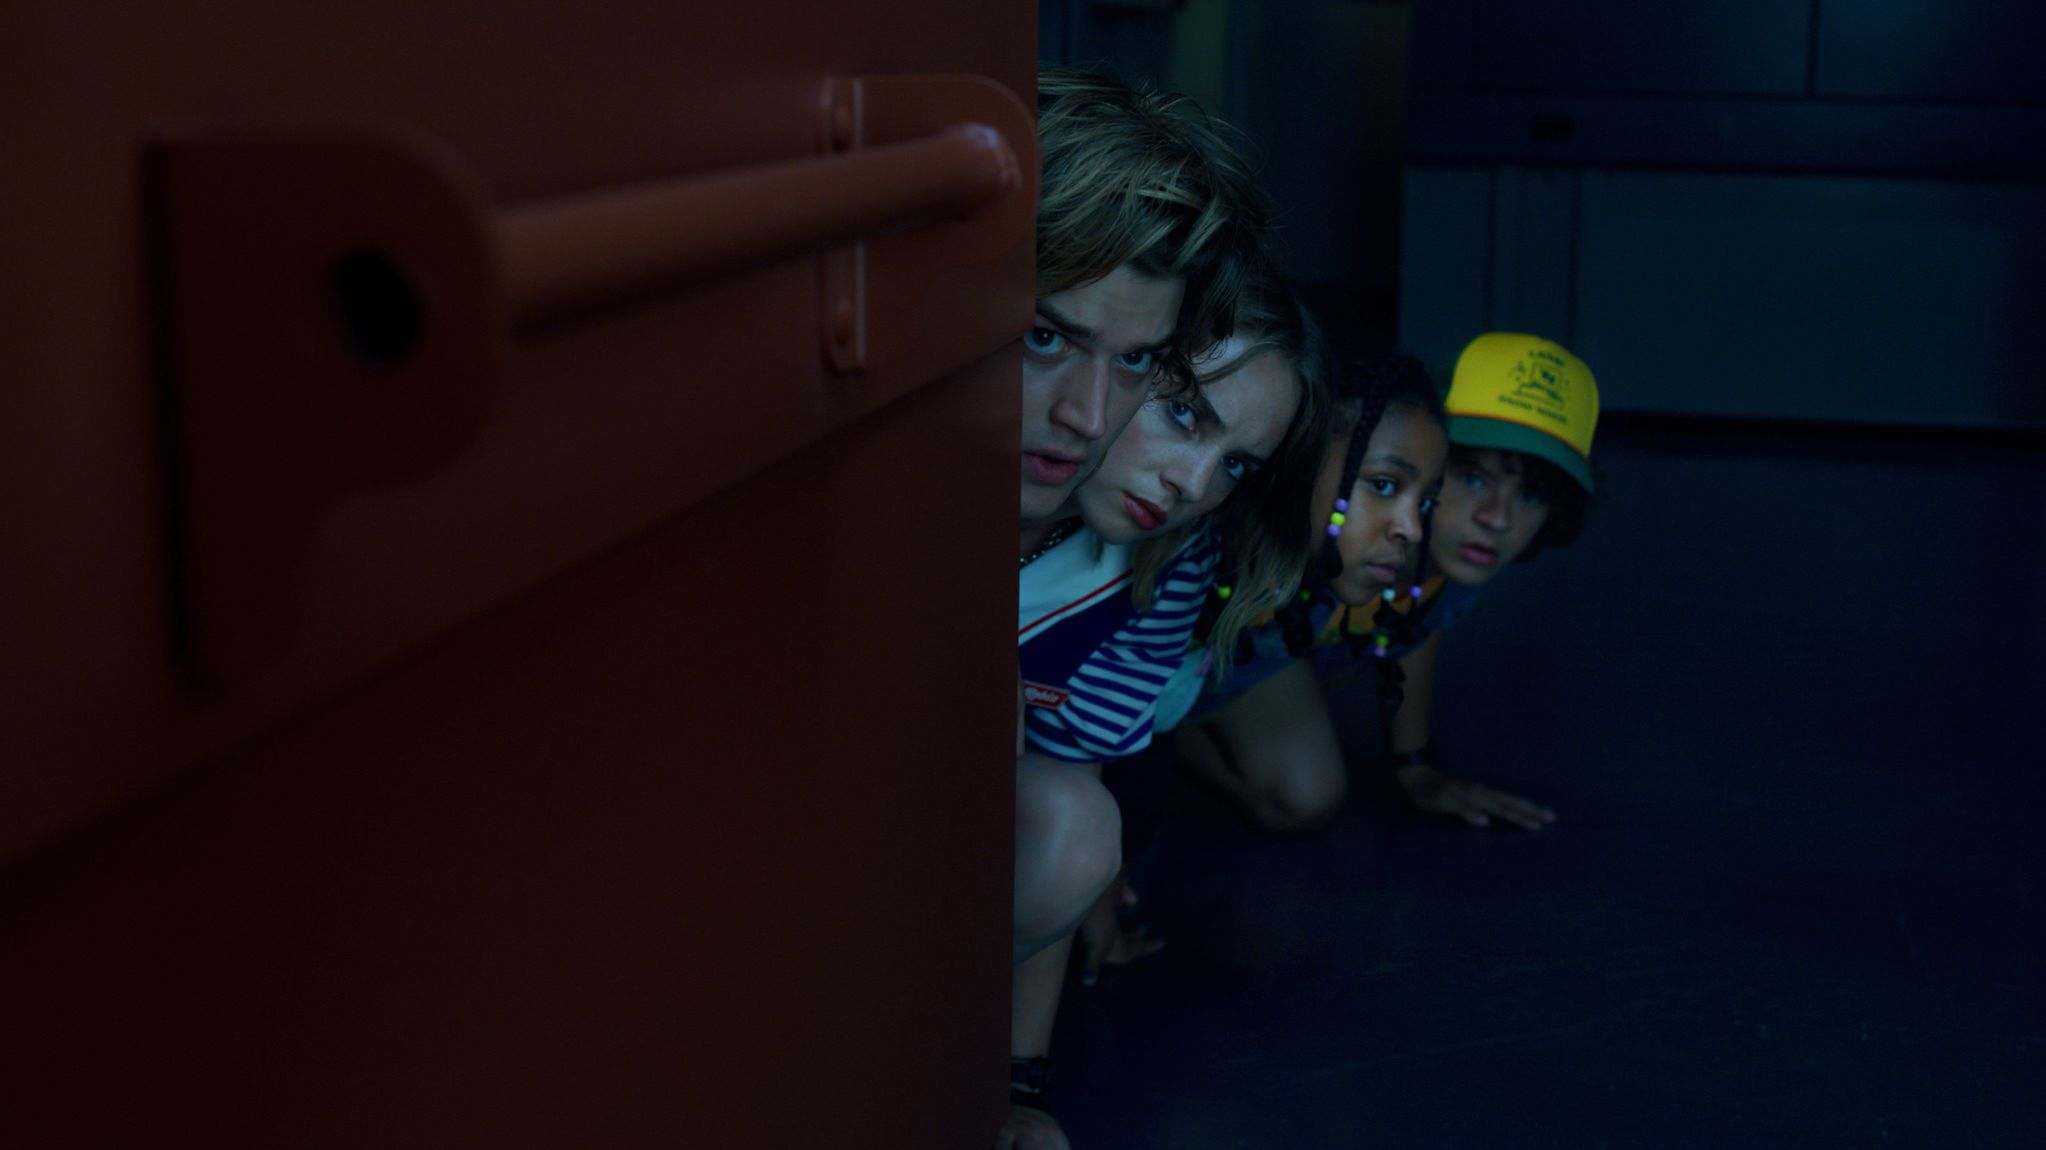 Netflix's Stranger Things Season 3 Video Is Full of Easter Eggs You Might Have Missed